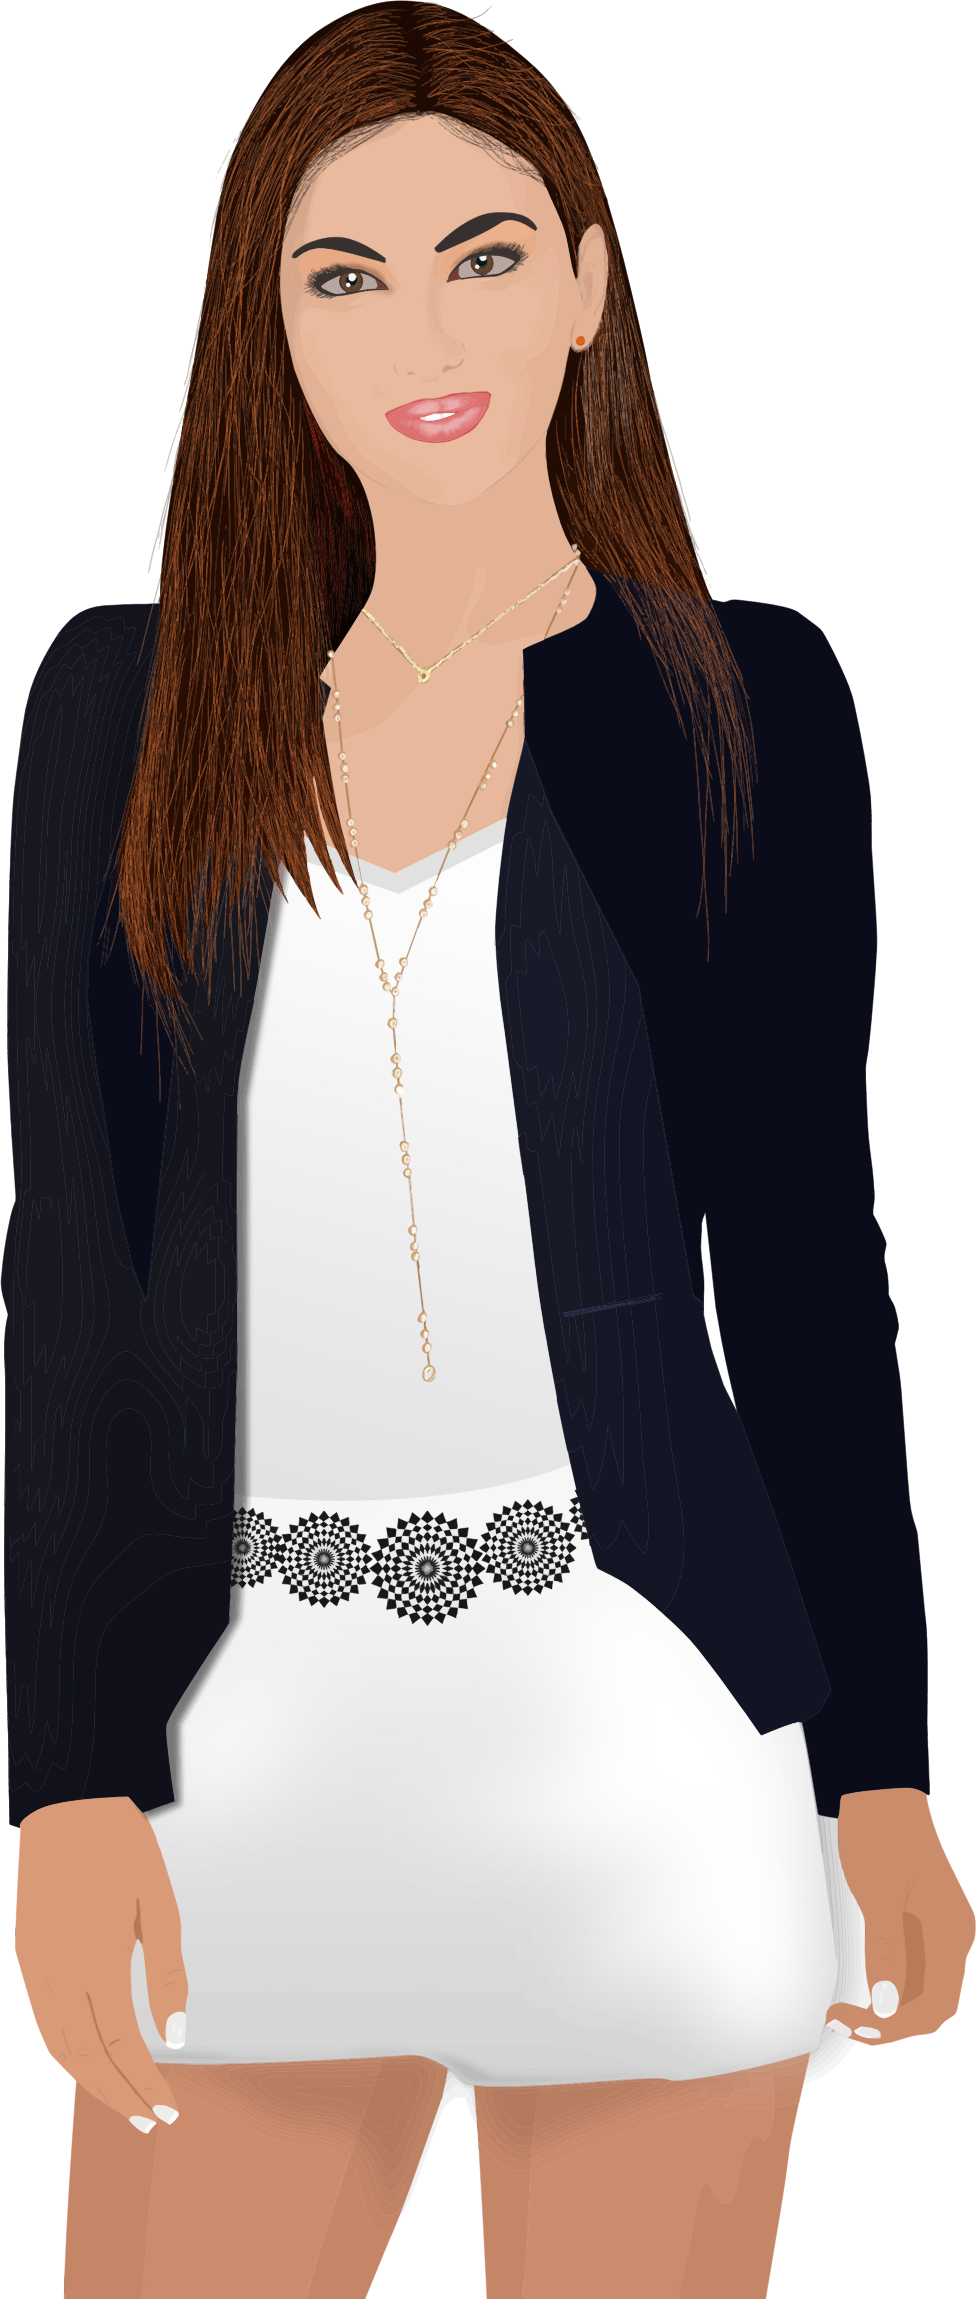 image royalty free download Businesswoman clipart working lady. Business woman portrait trace.